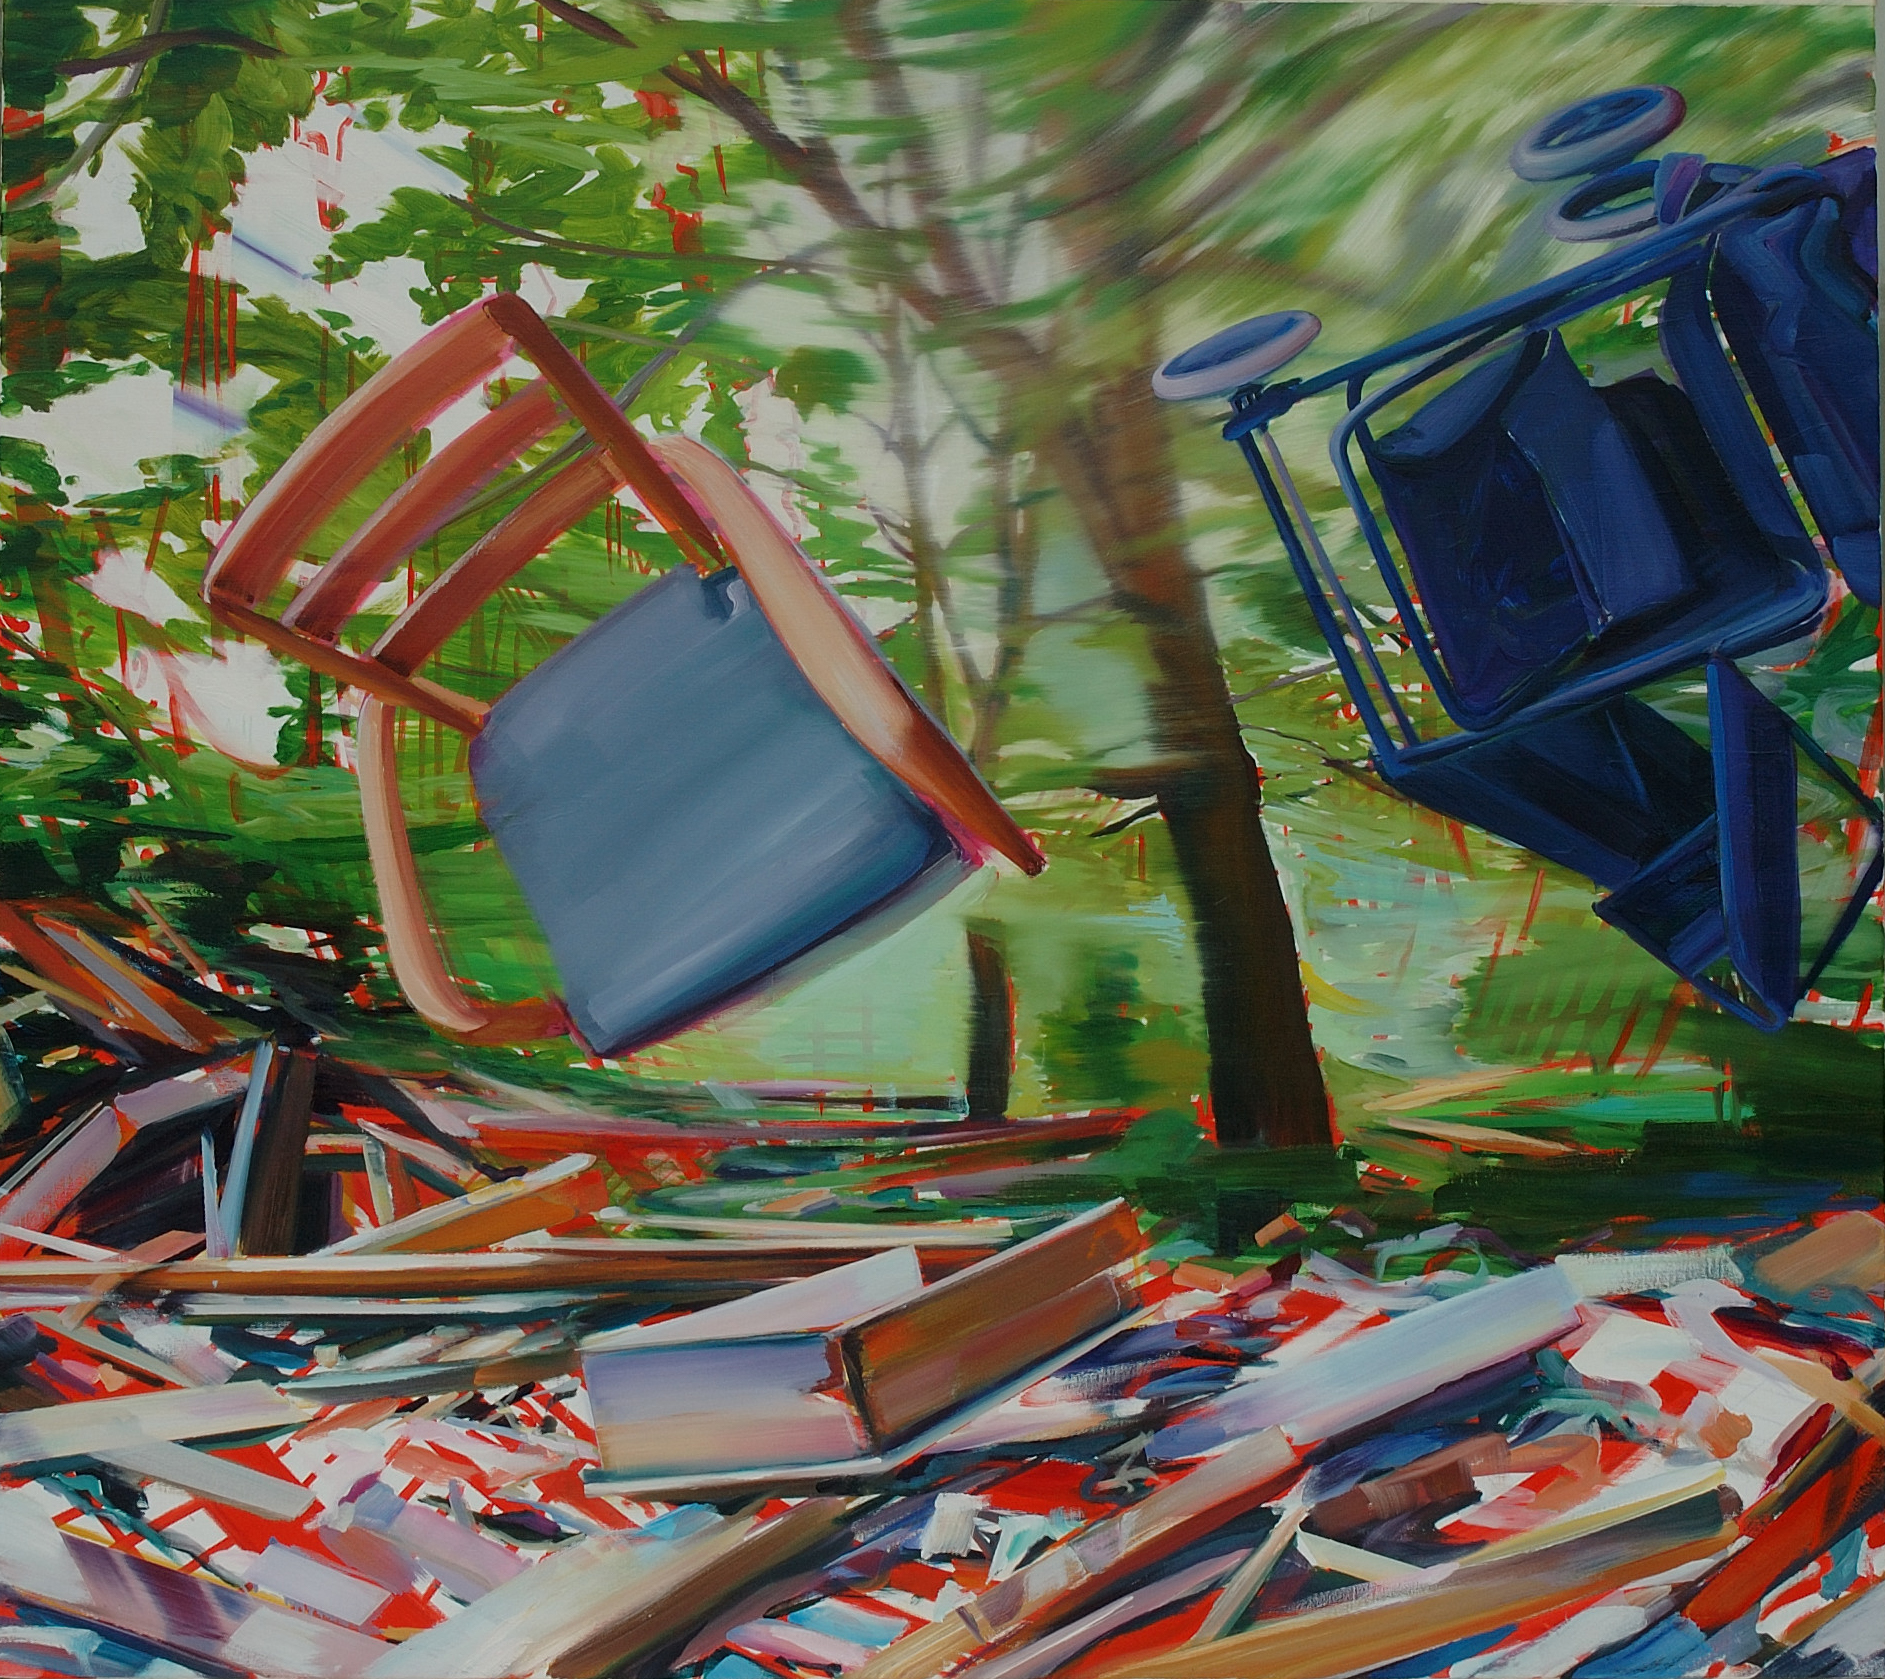 Mobile home , 2007, oil on canvas, 142.5 x 160cm. Maison Marin collection, France